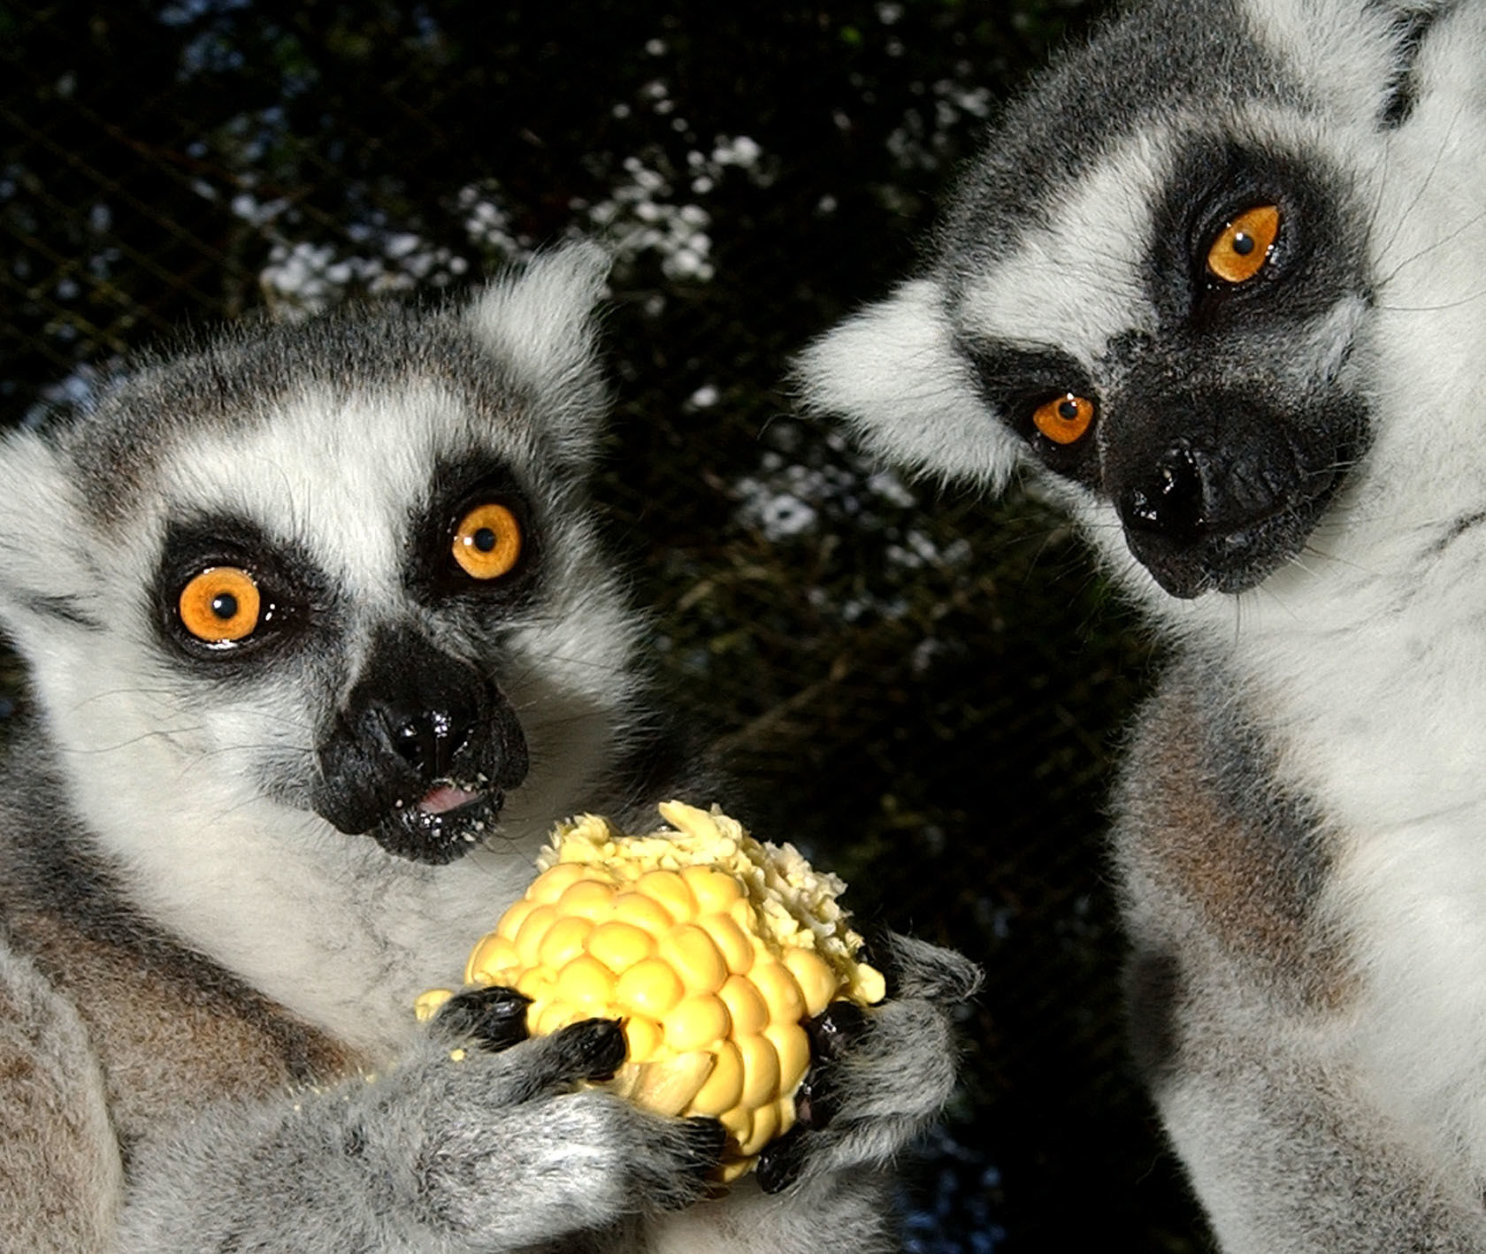 Two ring-tailed lemurs at the Tallahassee Museum of History and Natural Science, attempt to settle the dilemma of one ear of corn between them, Wednesday, June 26, 2002. The lemurs, native to Madagascar, are on loan to the museum's guest animal habitat from the Brevard Zoo, in Melbourne, Fla. (AP Photo/Phil Coale)